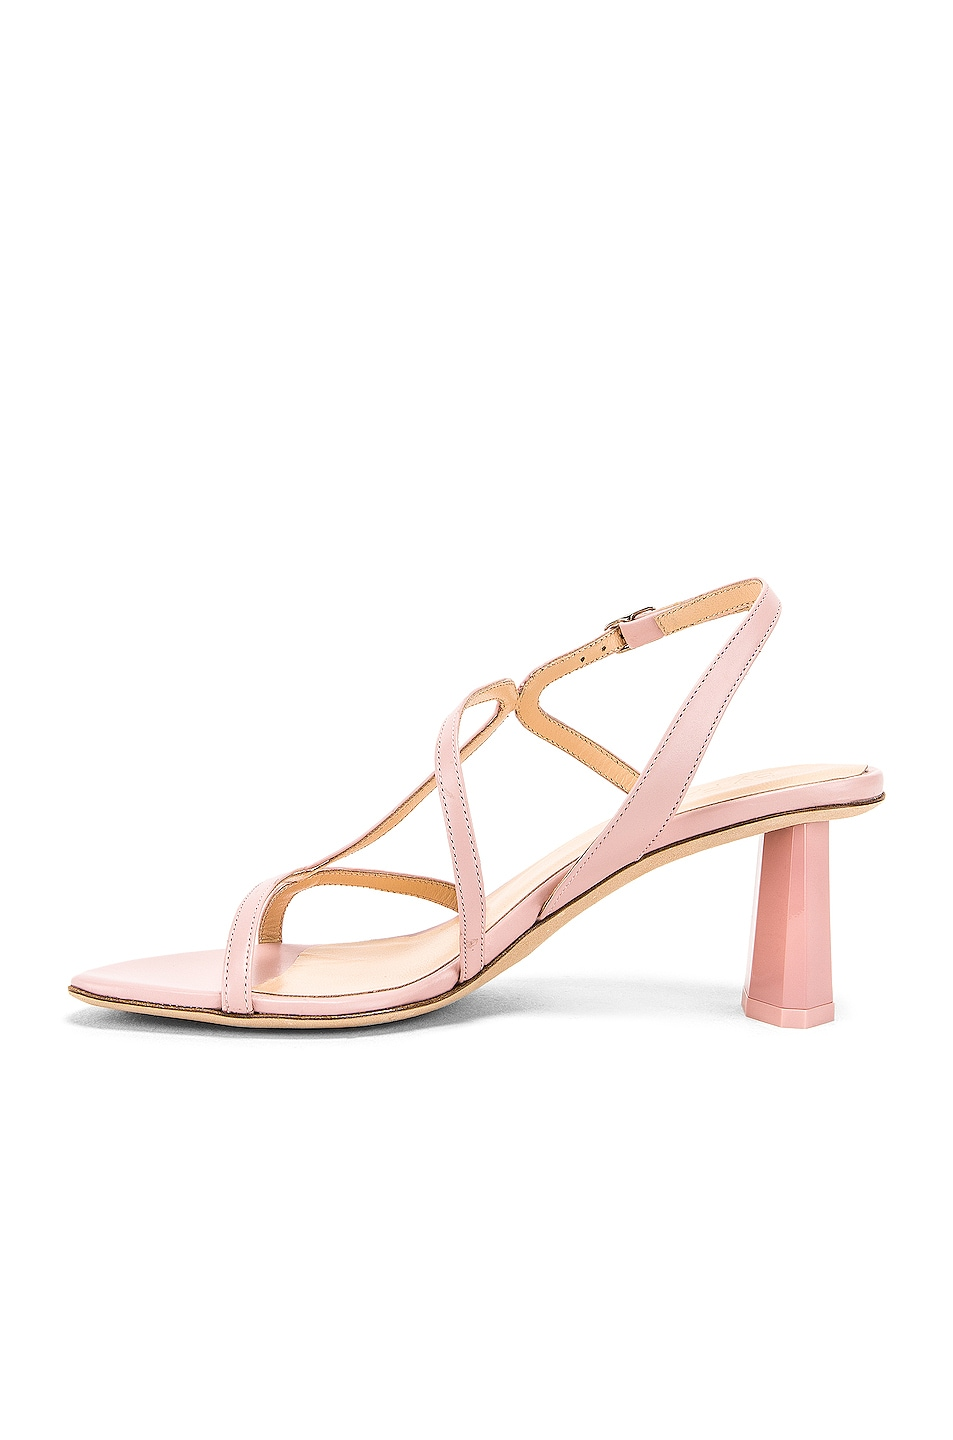 Image 5 of BY FAR Bridgette Sandal in Blush Leather